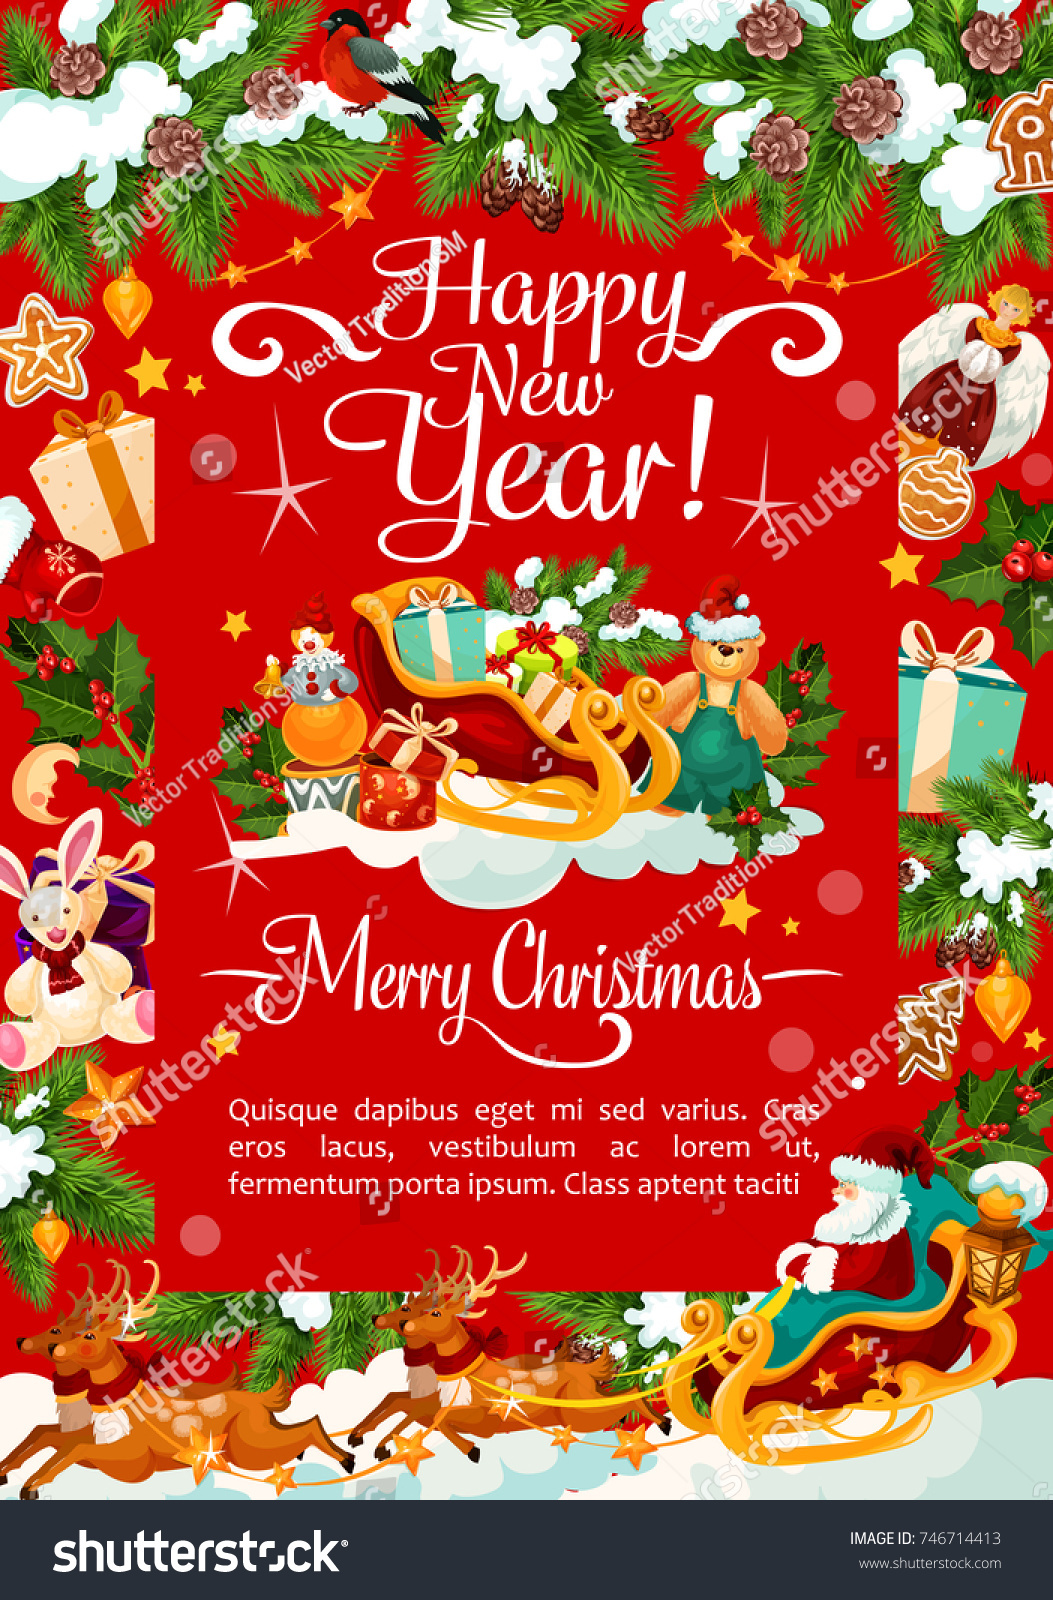 Happy New Year Merry Christmas Wish Stock Vector Royalty Free